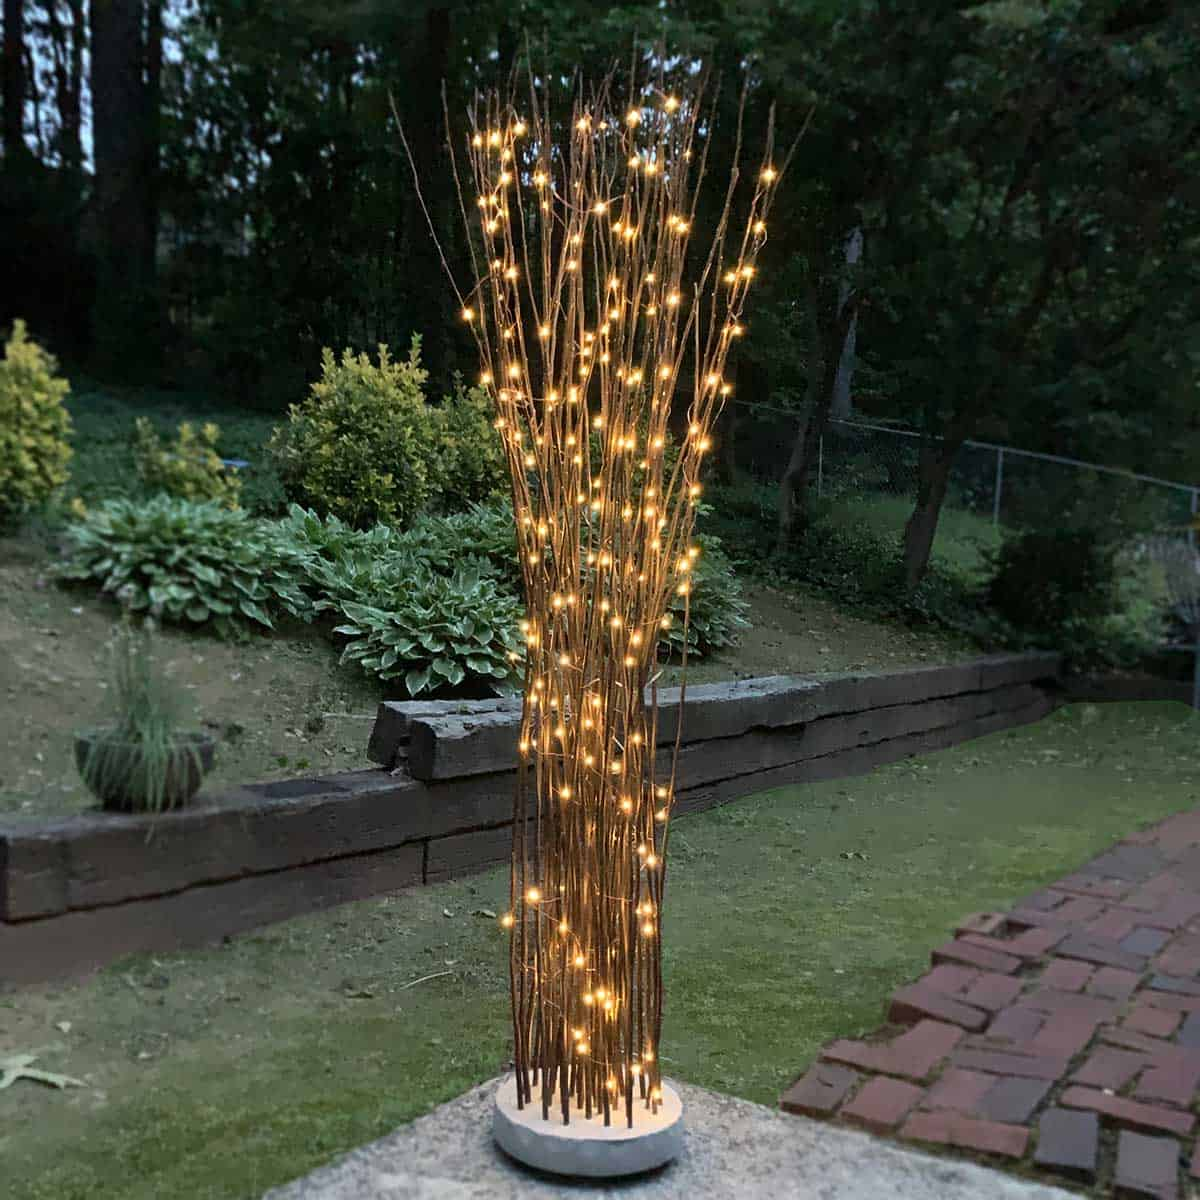 twigs in a floating cement stand on patio and lit